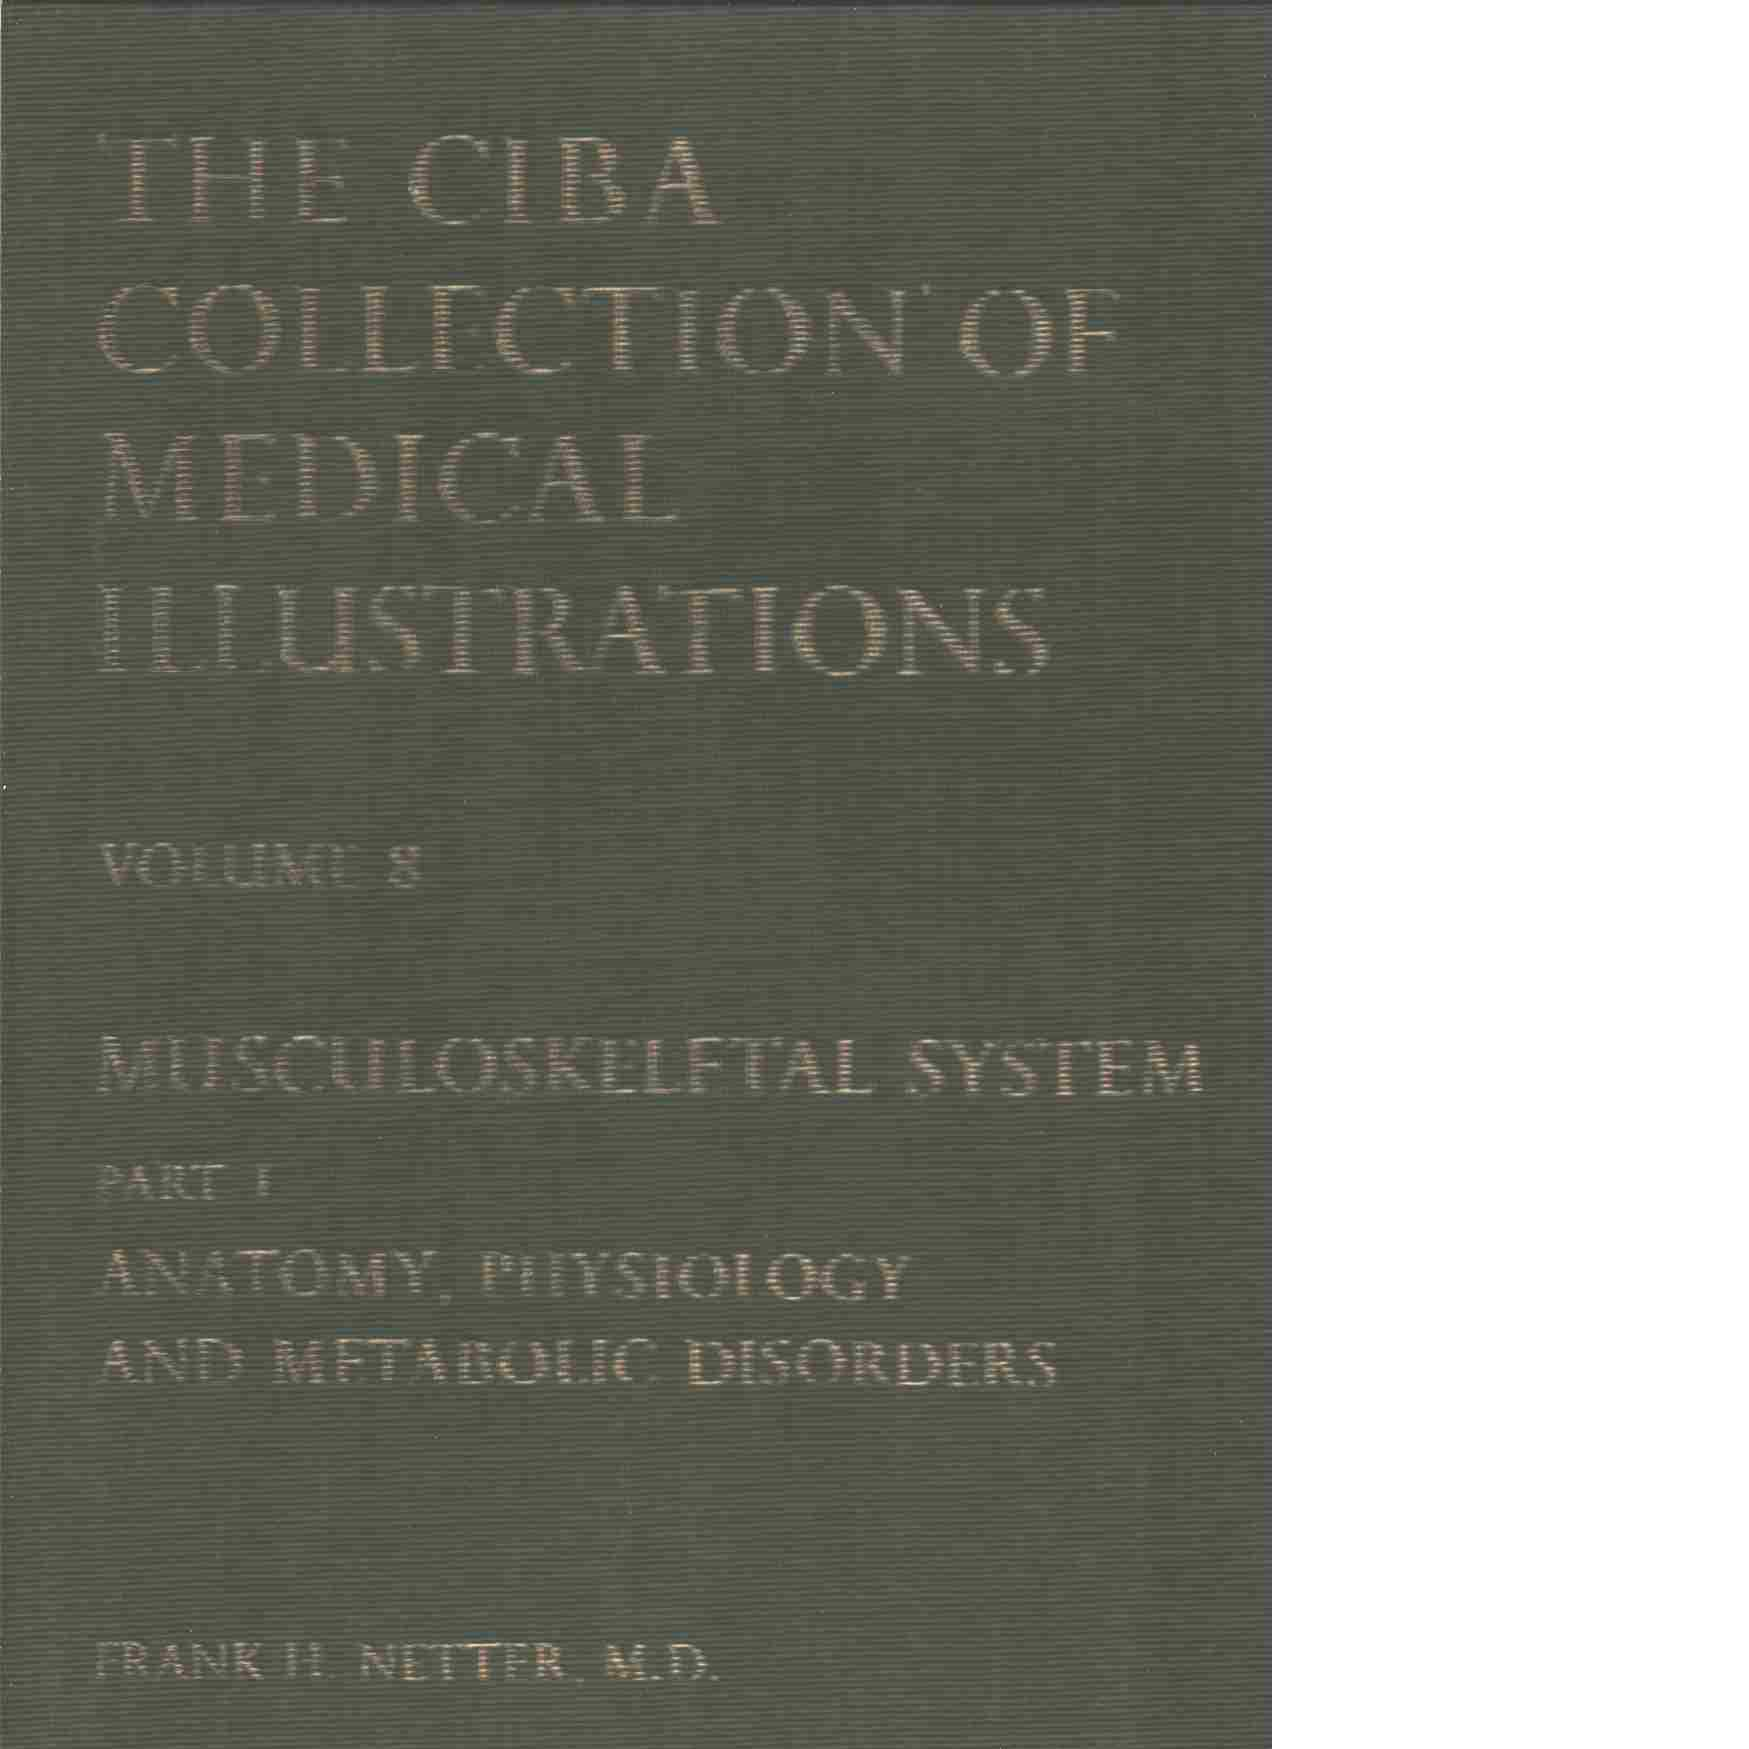 The Ciba Collection of Medical Illustrations, Volume 8 Musculoskeletal  System part I anatomy, physiology and metabolic disorders - Netter Frank H.